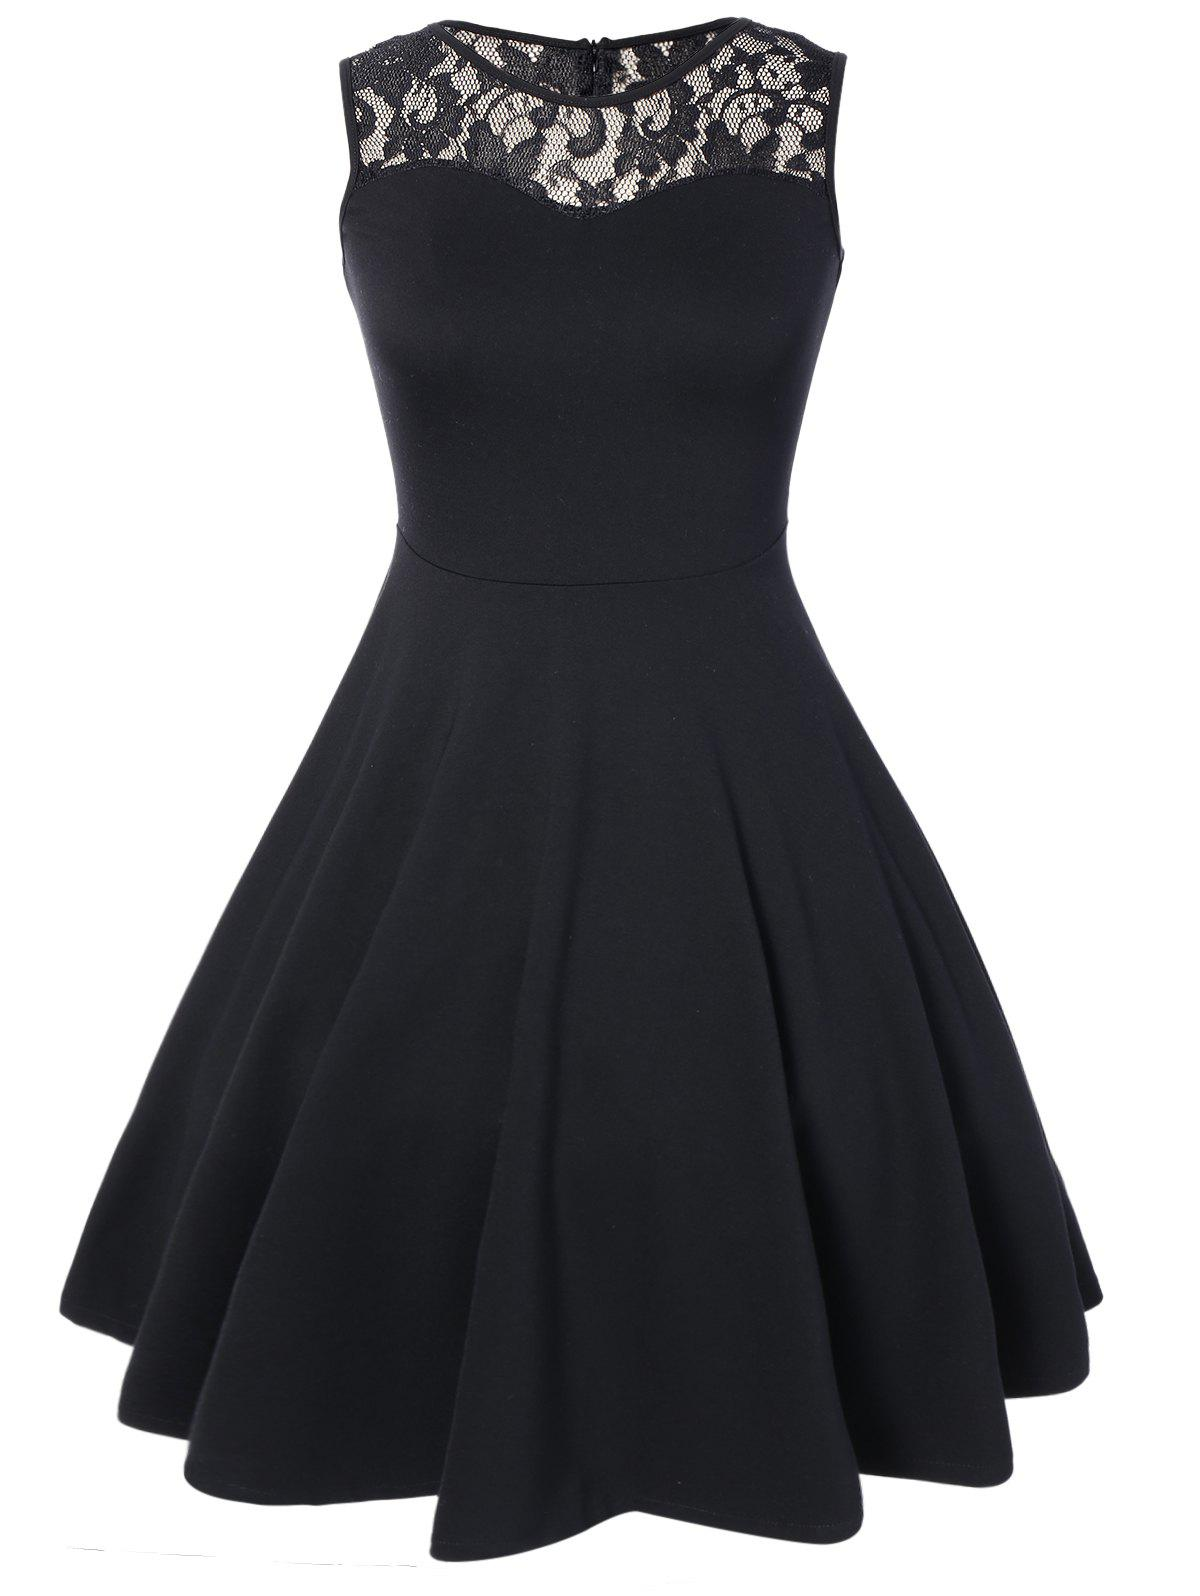 Sleeveless Lace A Line Party Swing Skater Dress - BLACK L